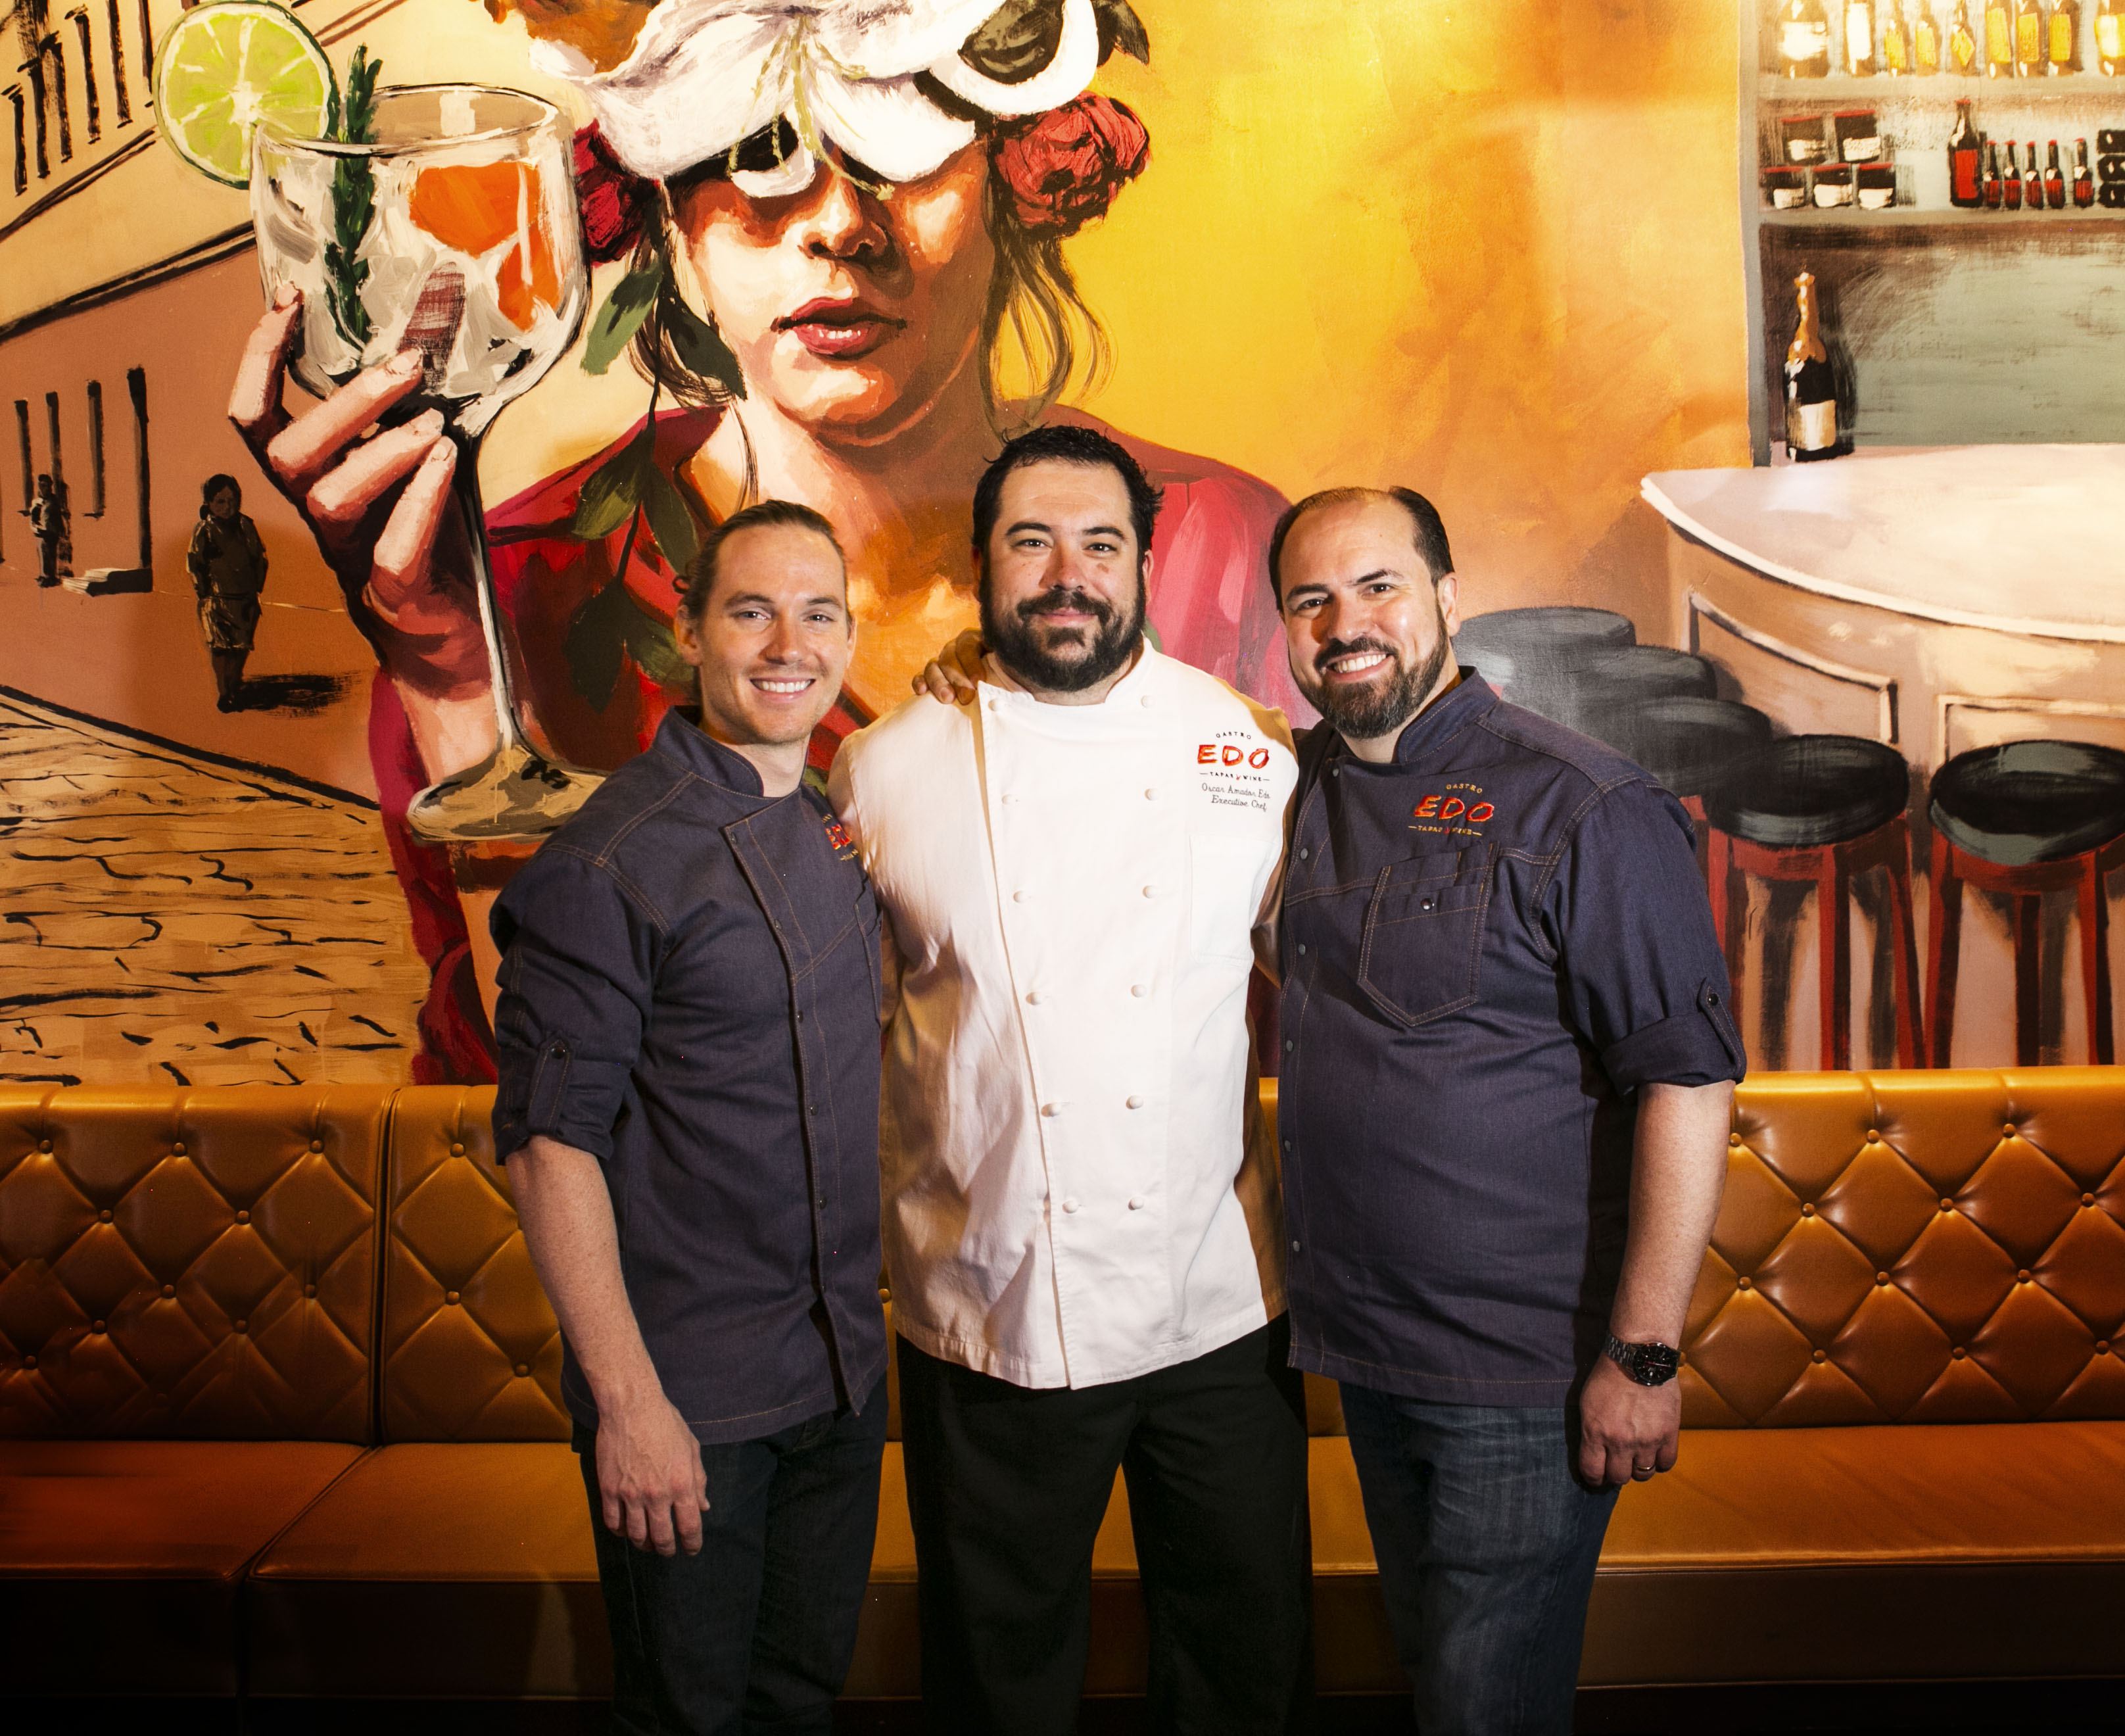 Three men stand in front of a mural at a Spanish restaurant